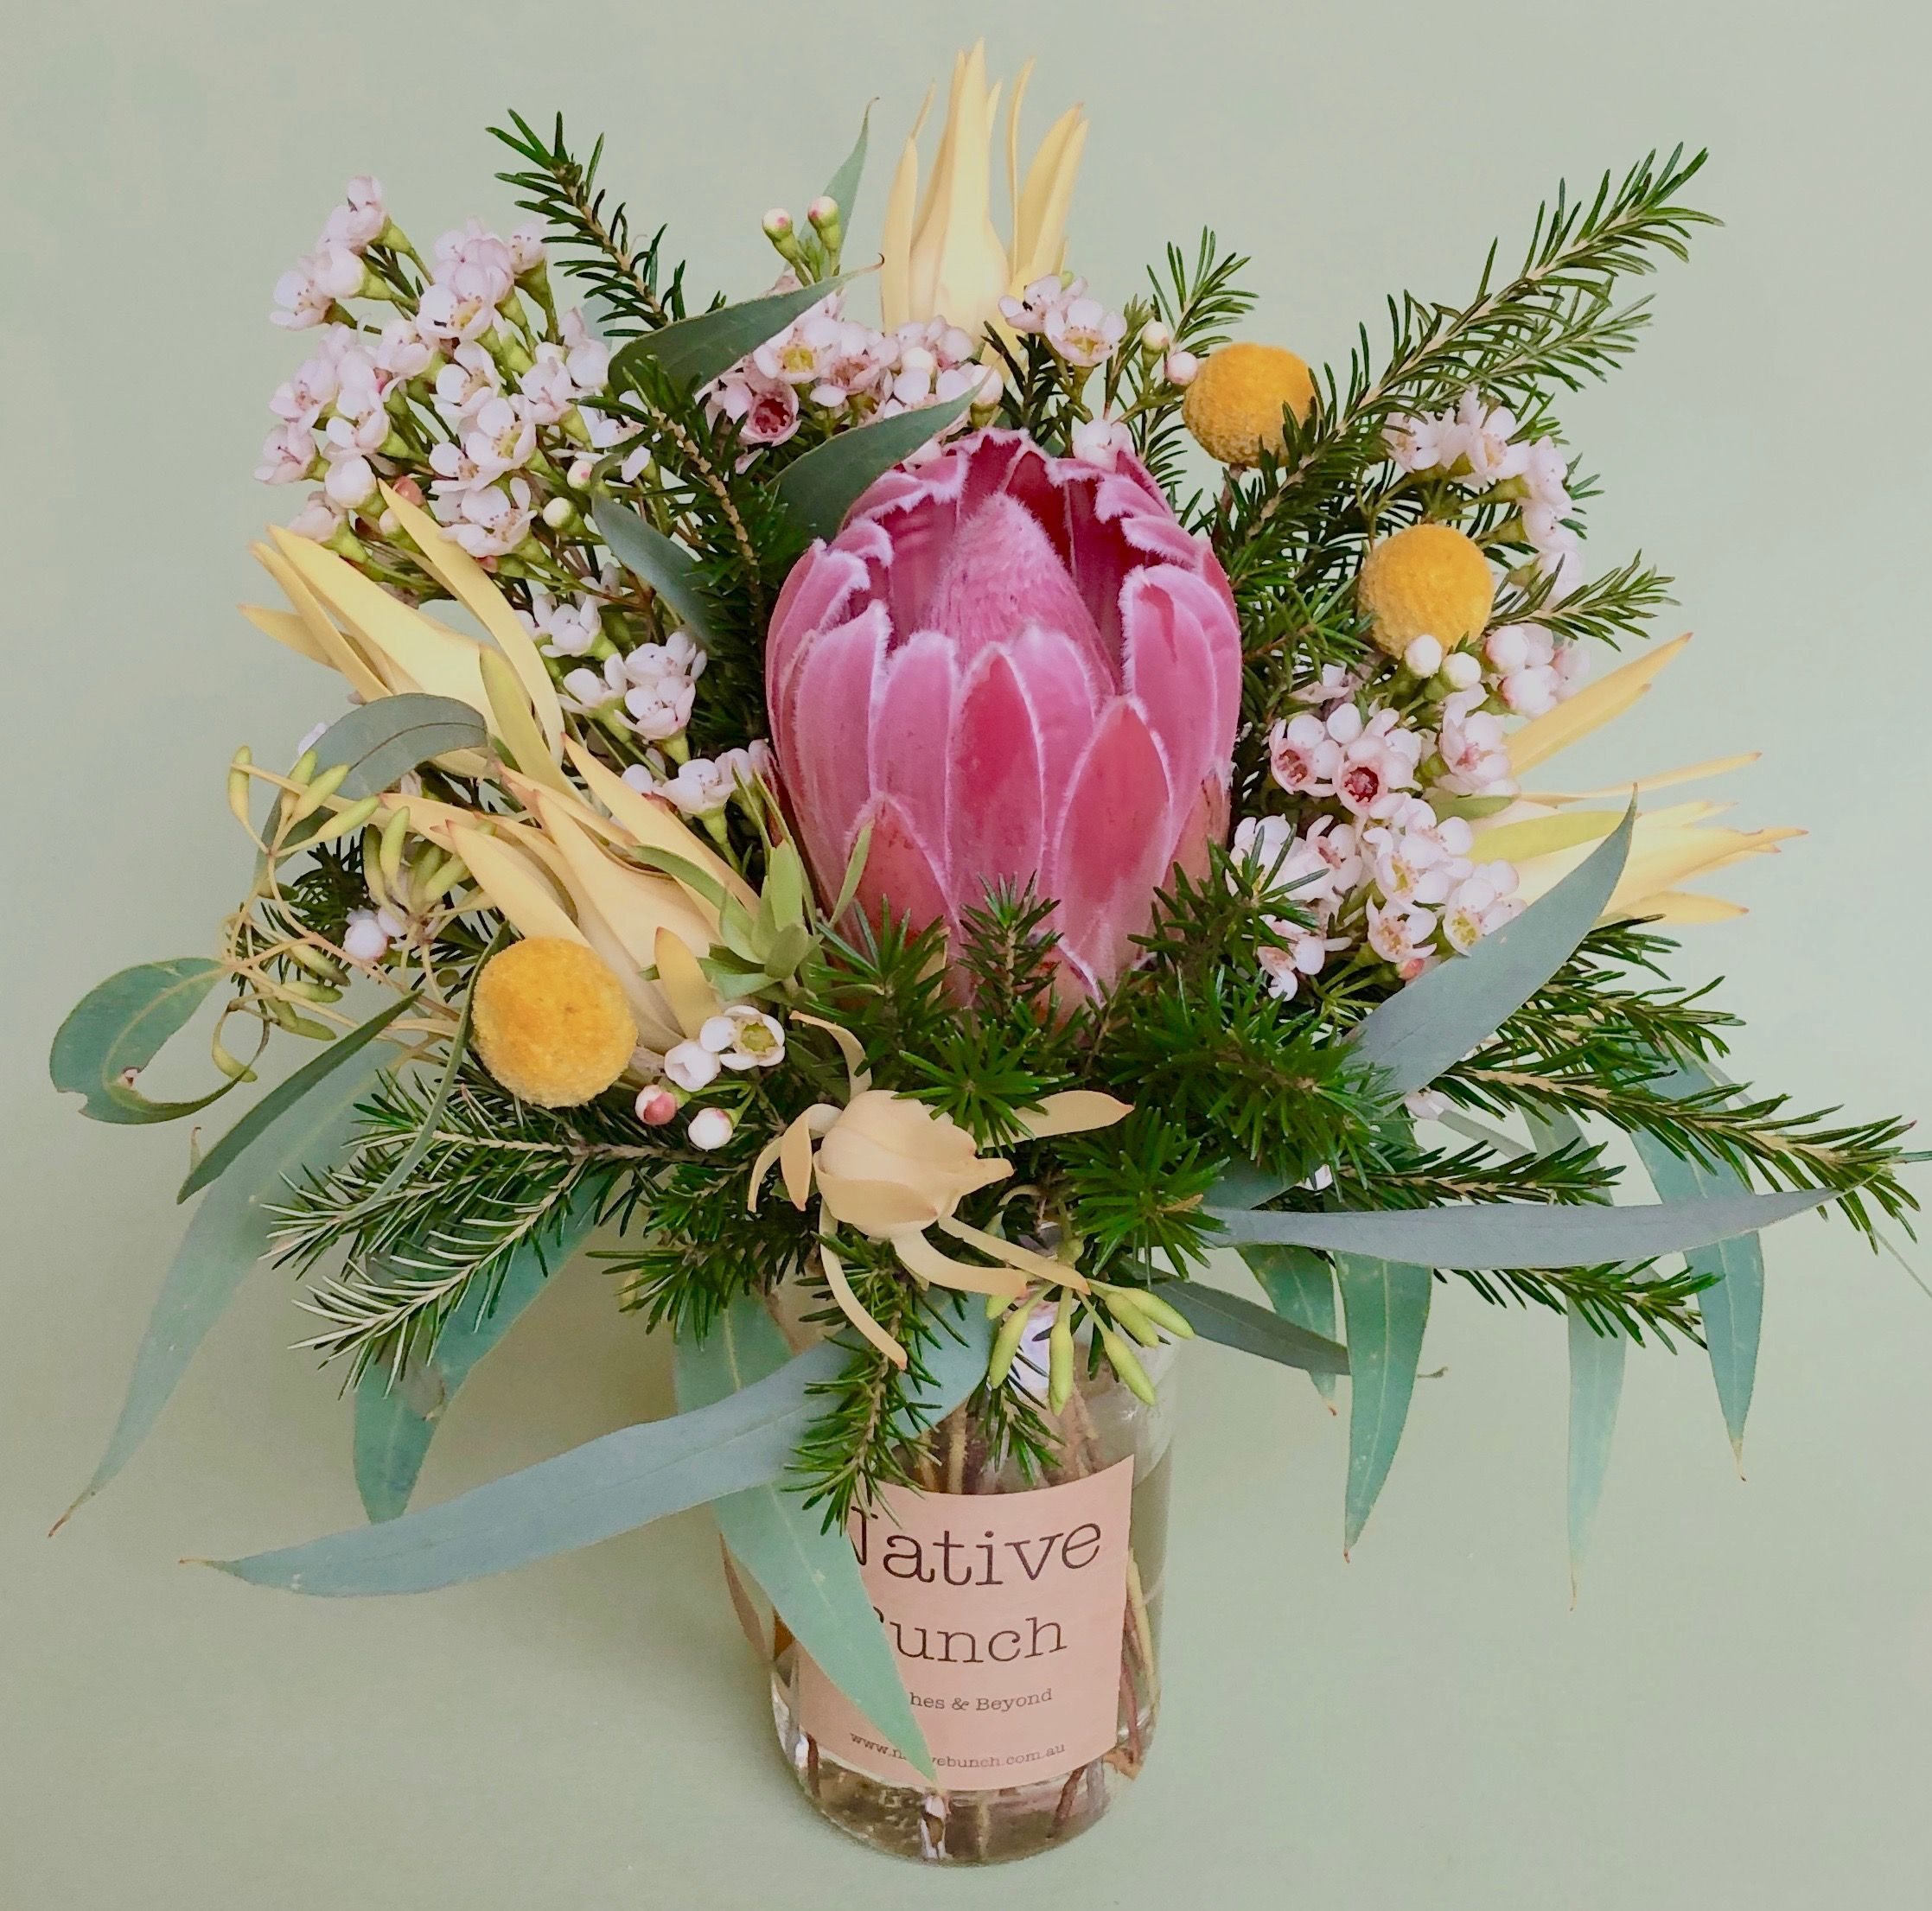 Native flower posy by Native Bunch. Protea, Waxflower